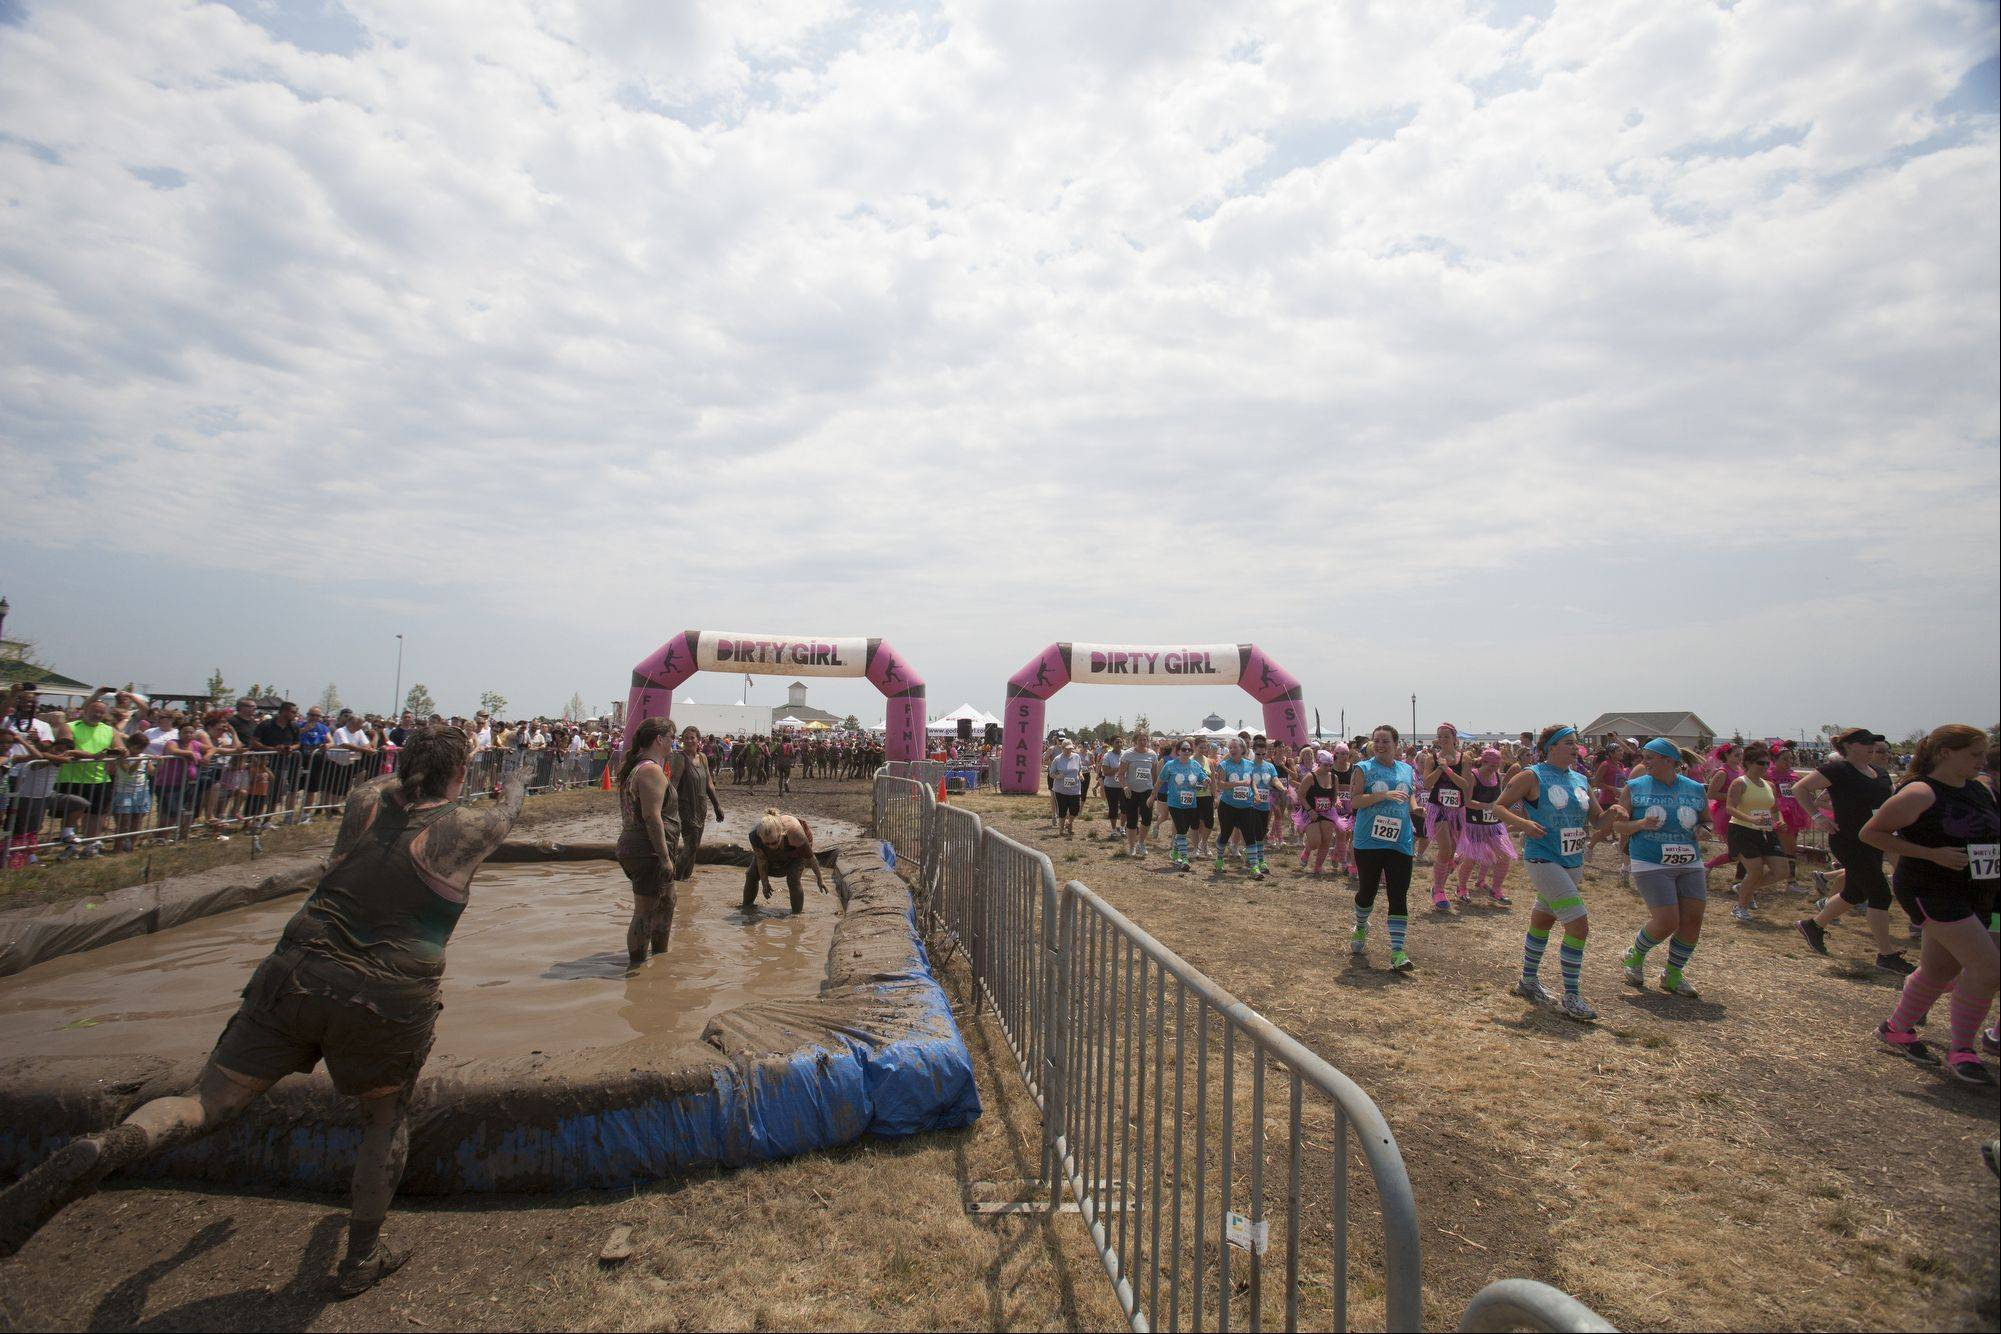 As women finish the Dirty Girl Mud Run others begin their 5K trek, Groups left every 15 minutes from the starting area. Around 8,000 women came out to Lake County Fair Grounds in Grayslake Saturday to participate in the fundraiser for the National Breast Cancer Association.